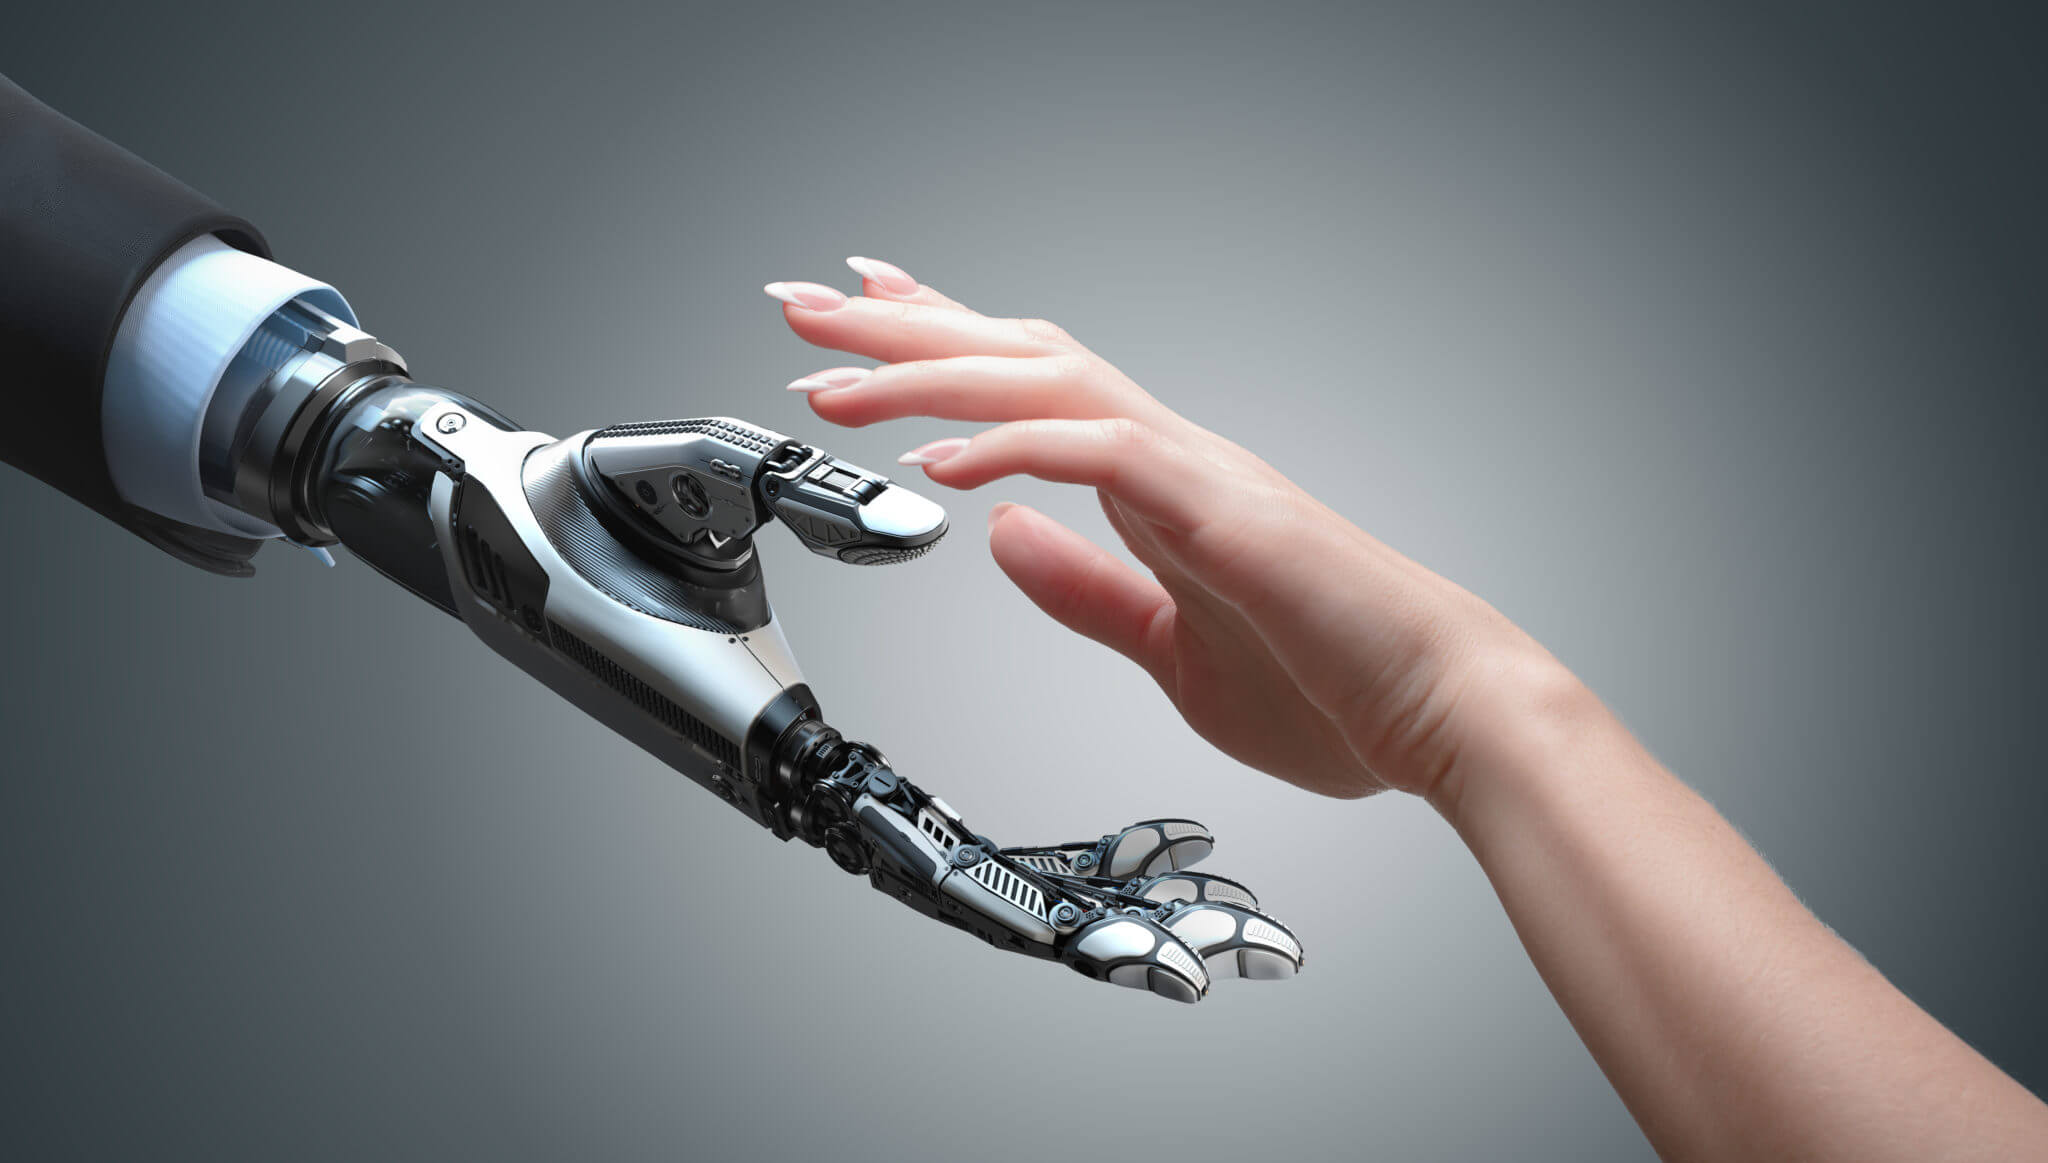 Touch with robots - Is this possible